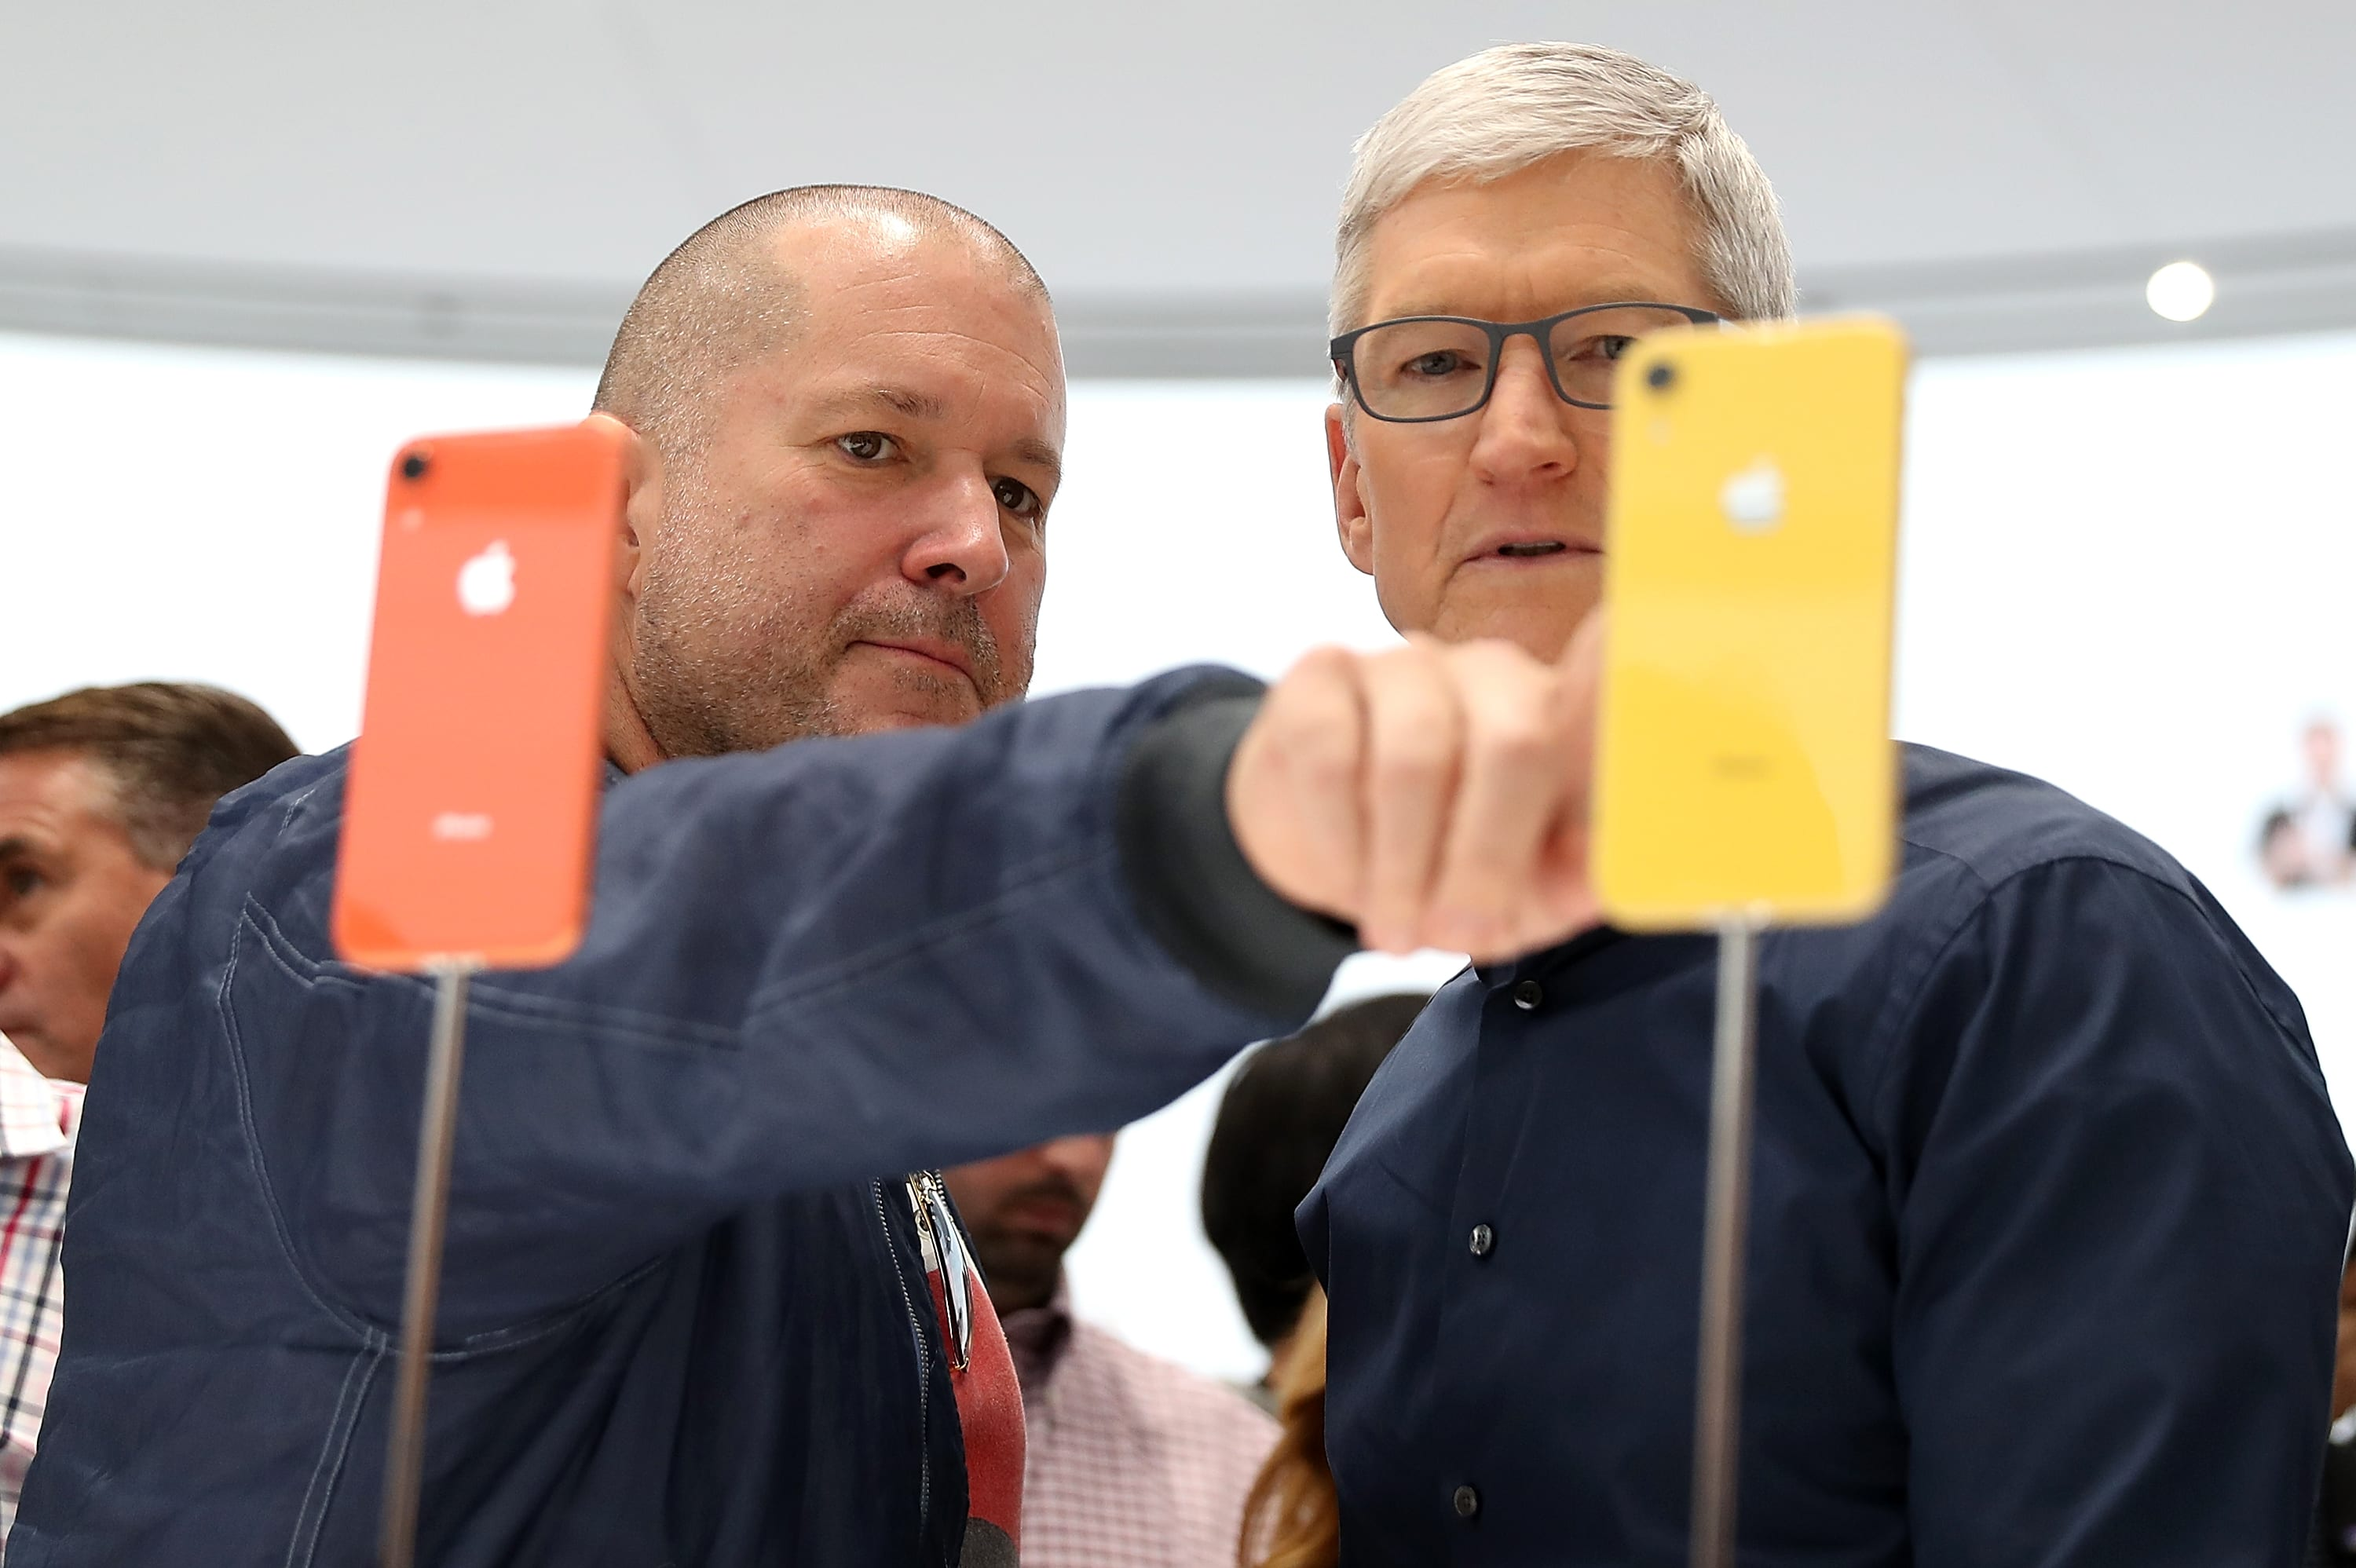 Apple September launch preview: IPhone, Apple Watch, AirPods